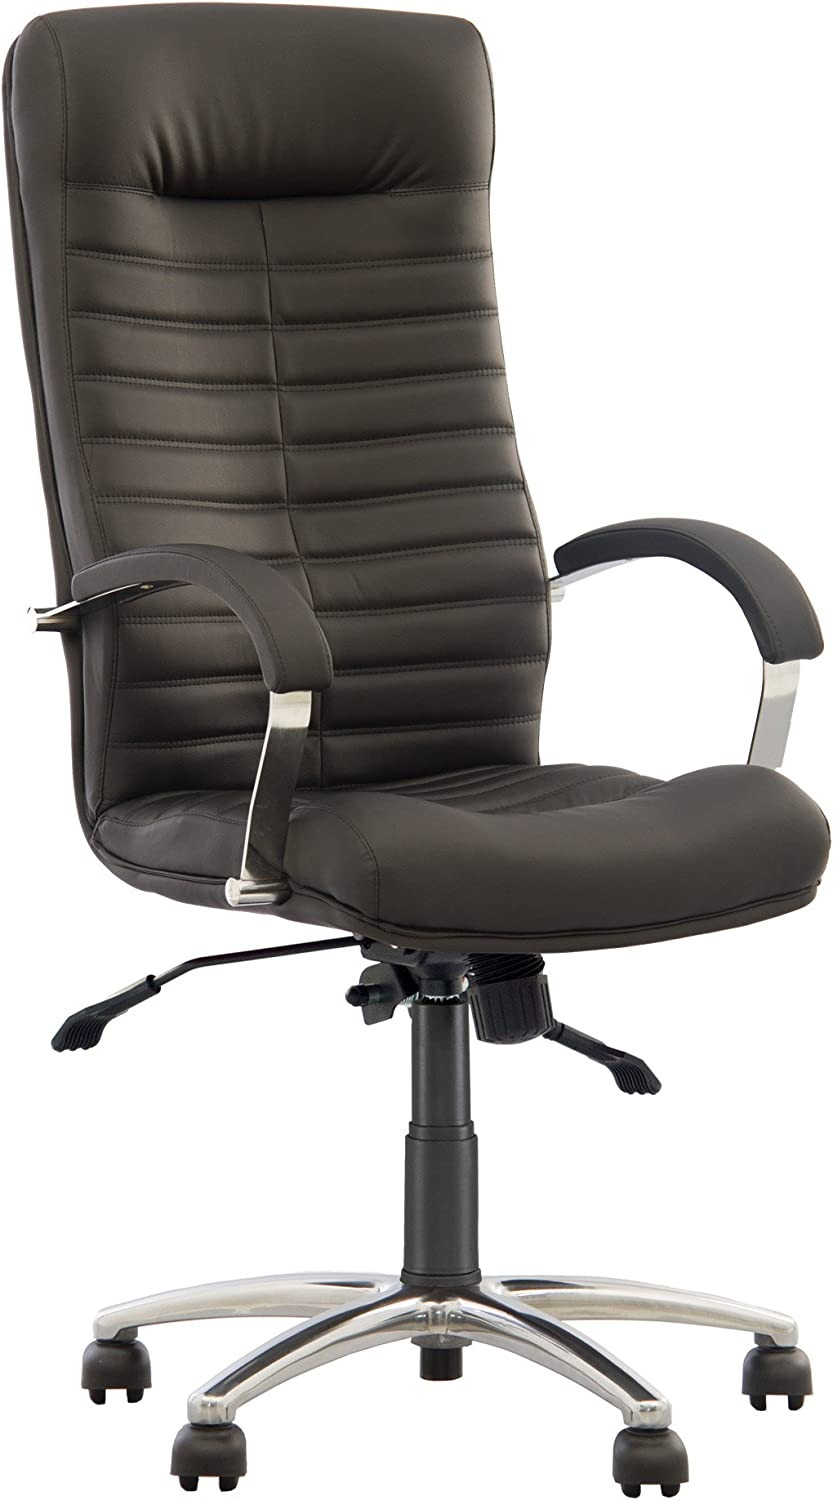 CHAISE EXPERT Orion Fauteuil DE Direction Professionnel AU